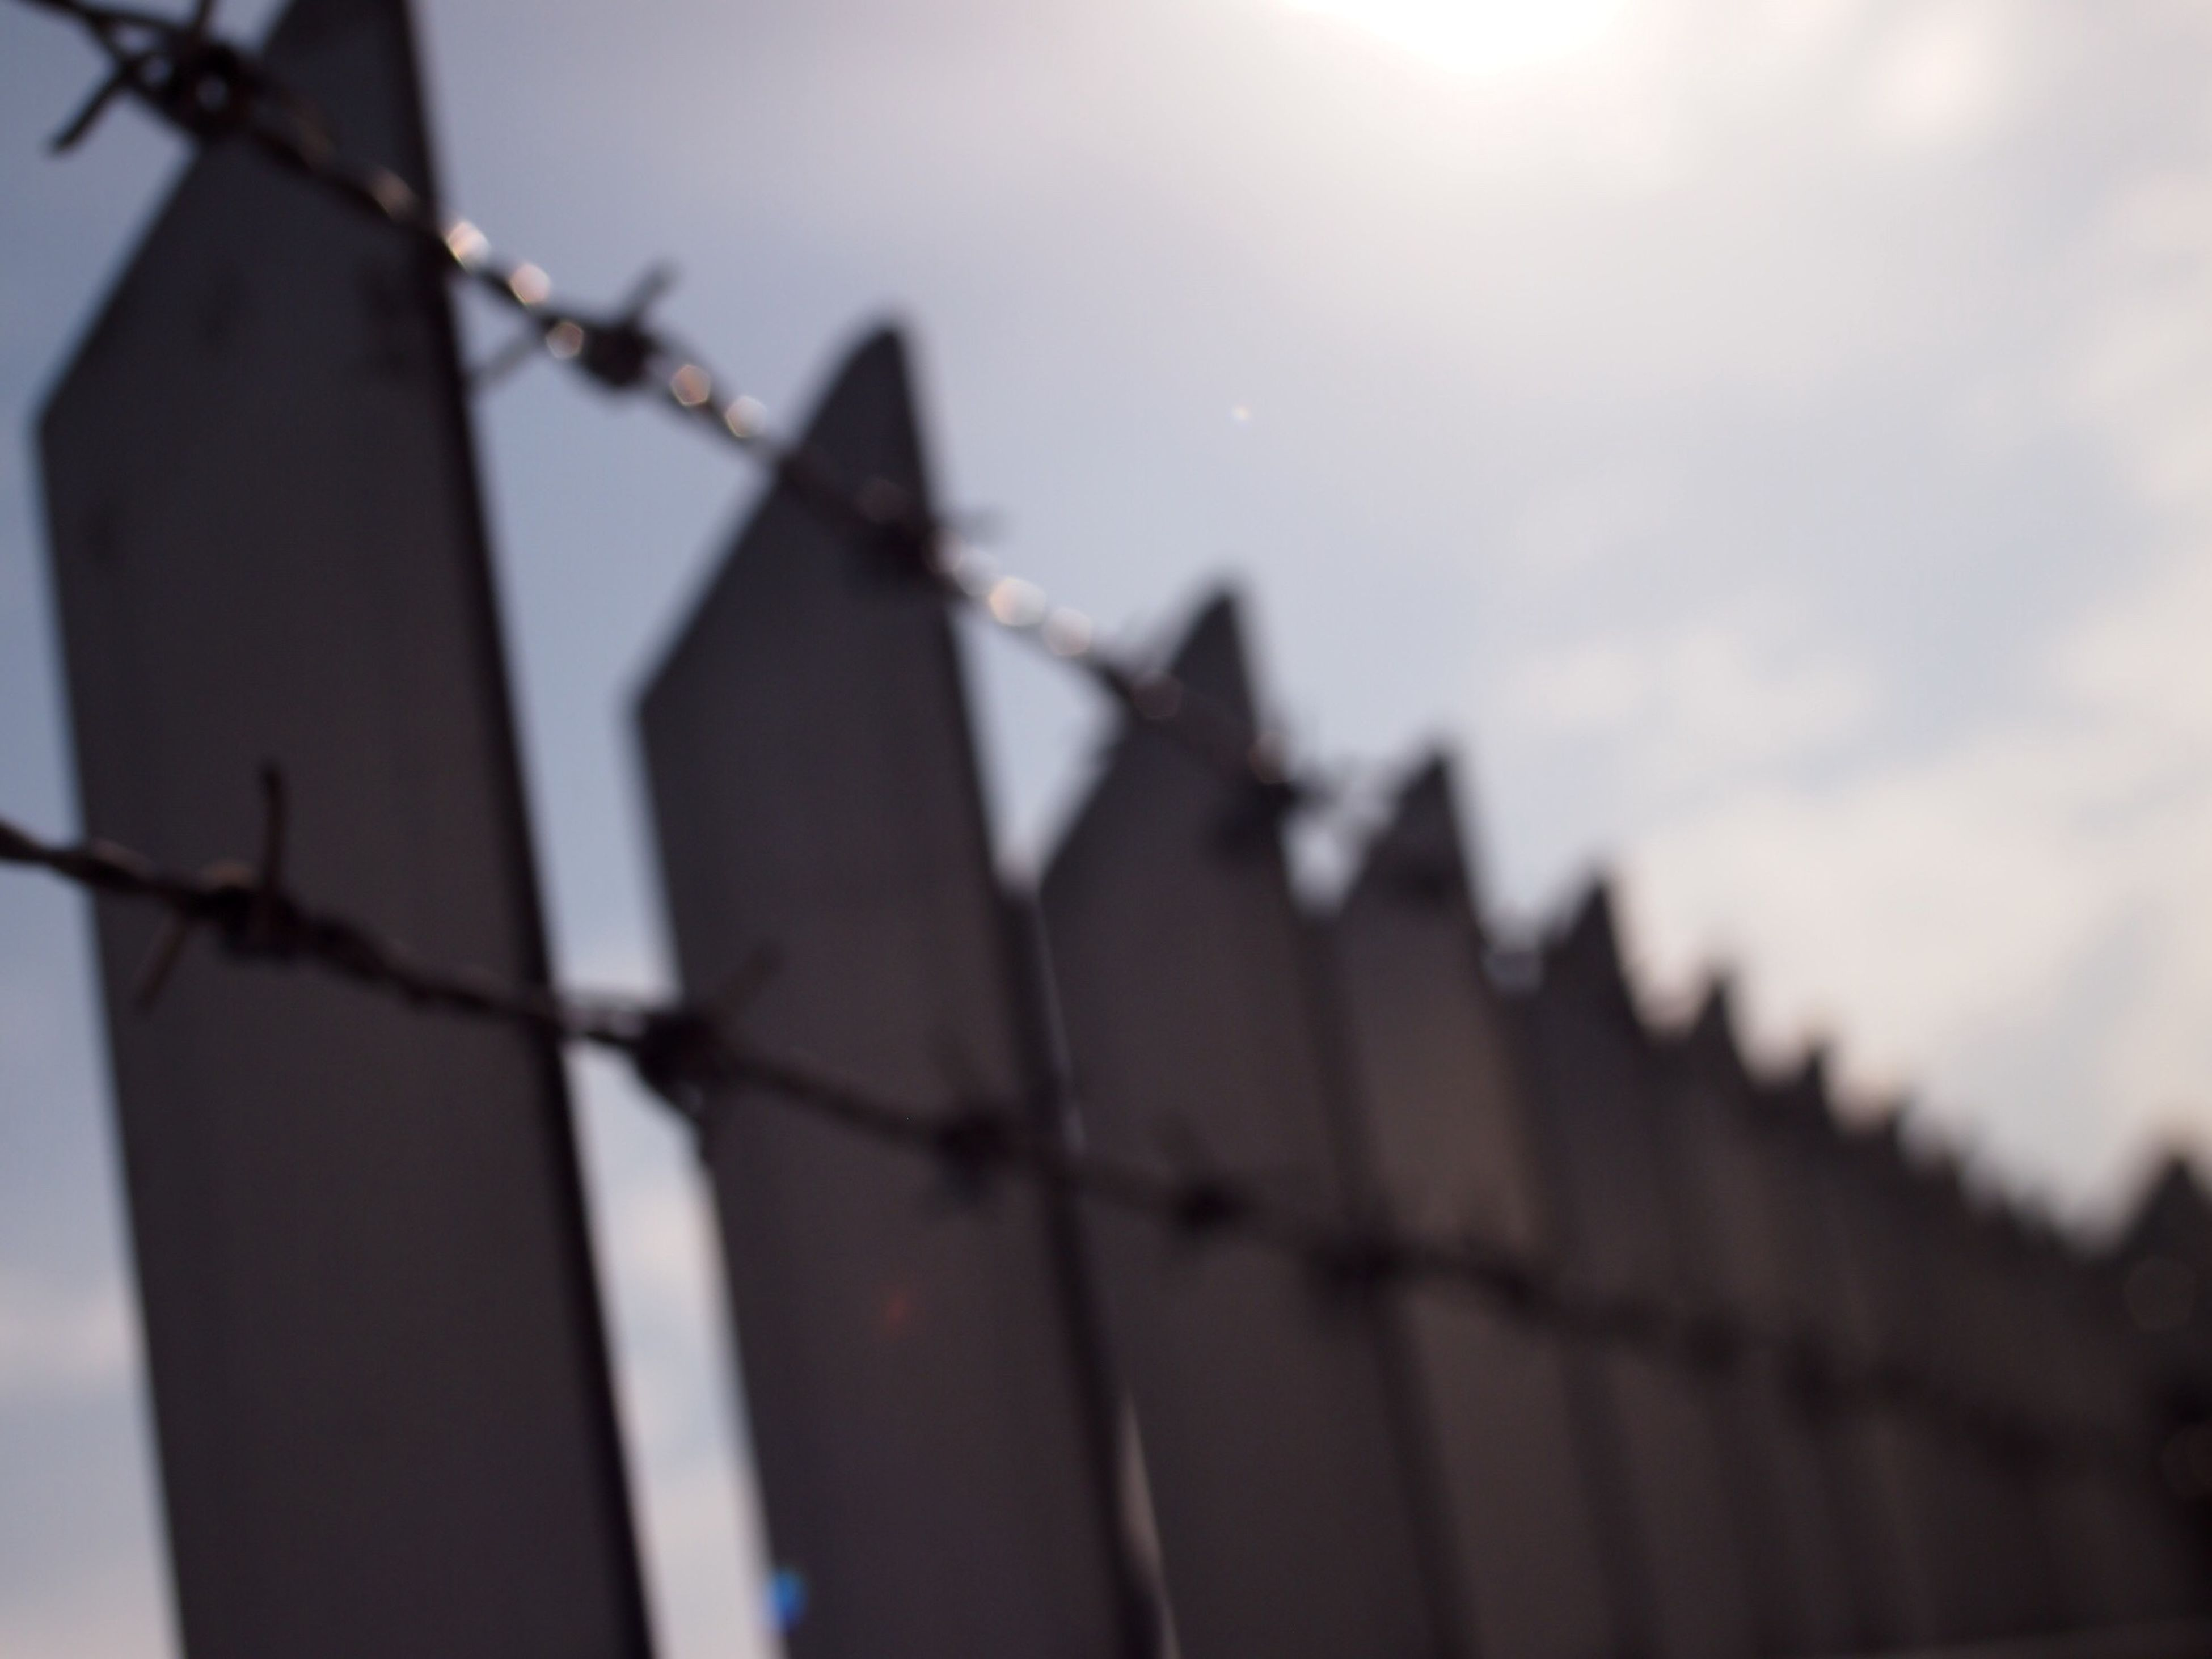 fence, protection, security, safety, focus on foreground, metal, chainlink fence, sky, close-up, barbed wire, low angle view, metallic, selective focus, in a row, pattern, day, outdoors, no people, hanging, nature